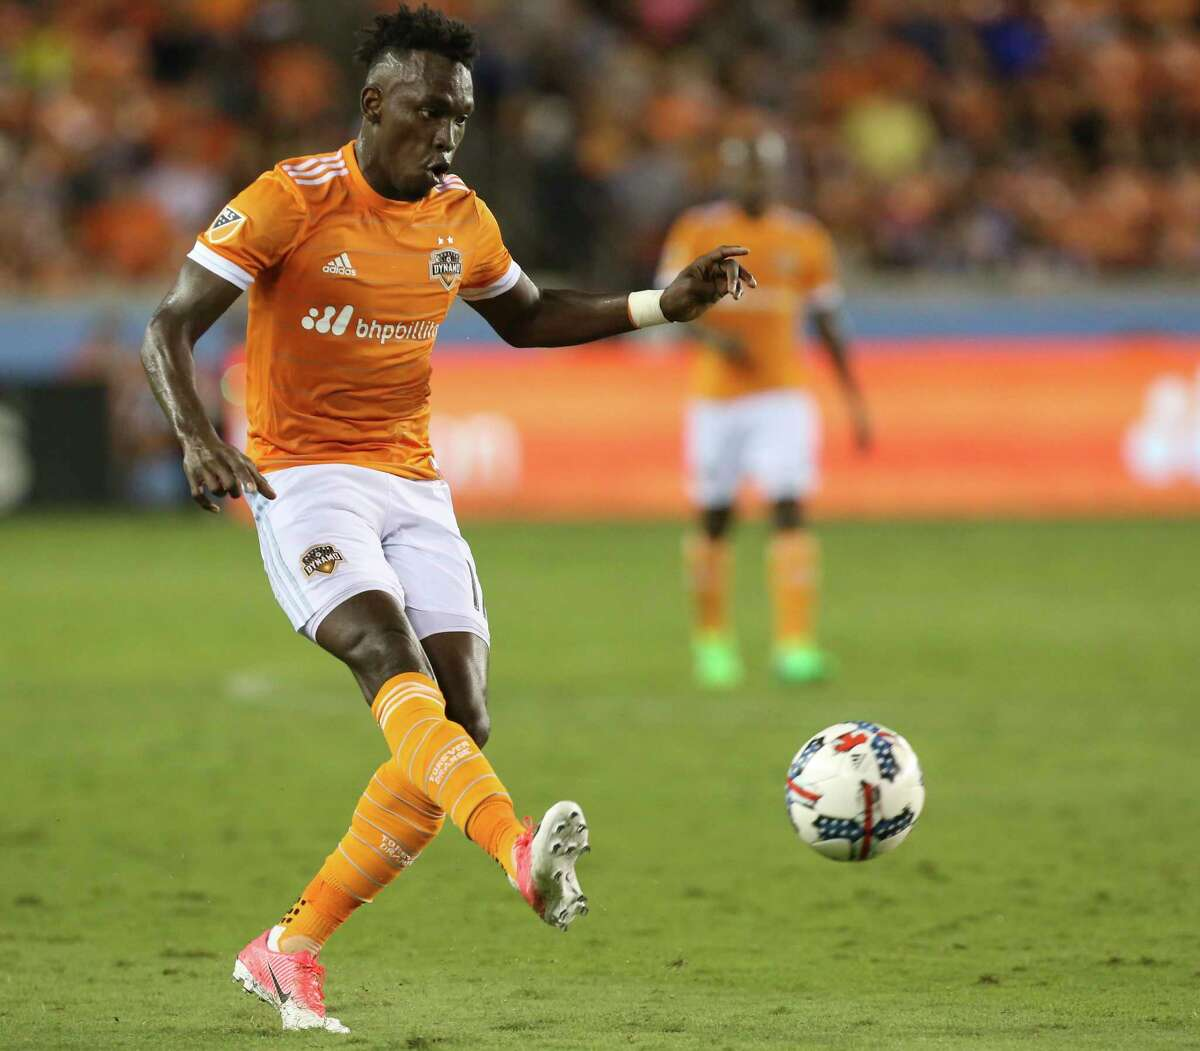 Houston Dynamo forward Alberth Elis (17) drives down the field during the second half of the game at BBVA Compass Stadium Saturday, April 15, 2017, in Houston.